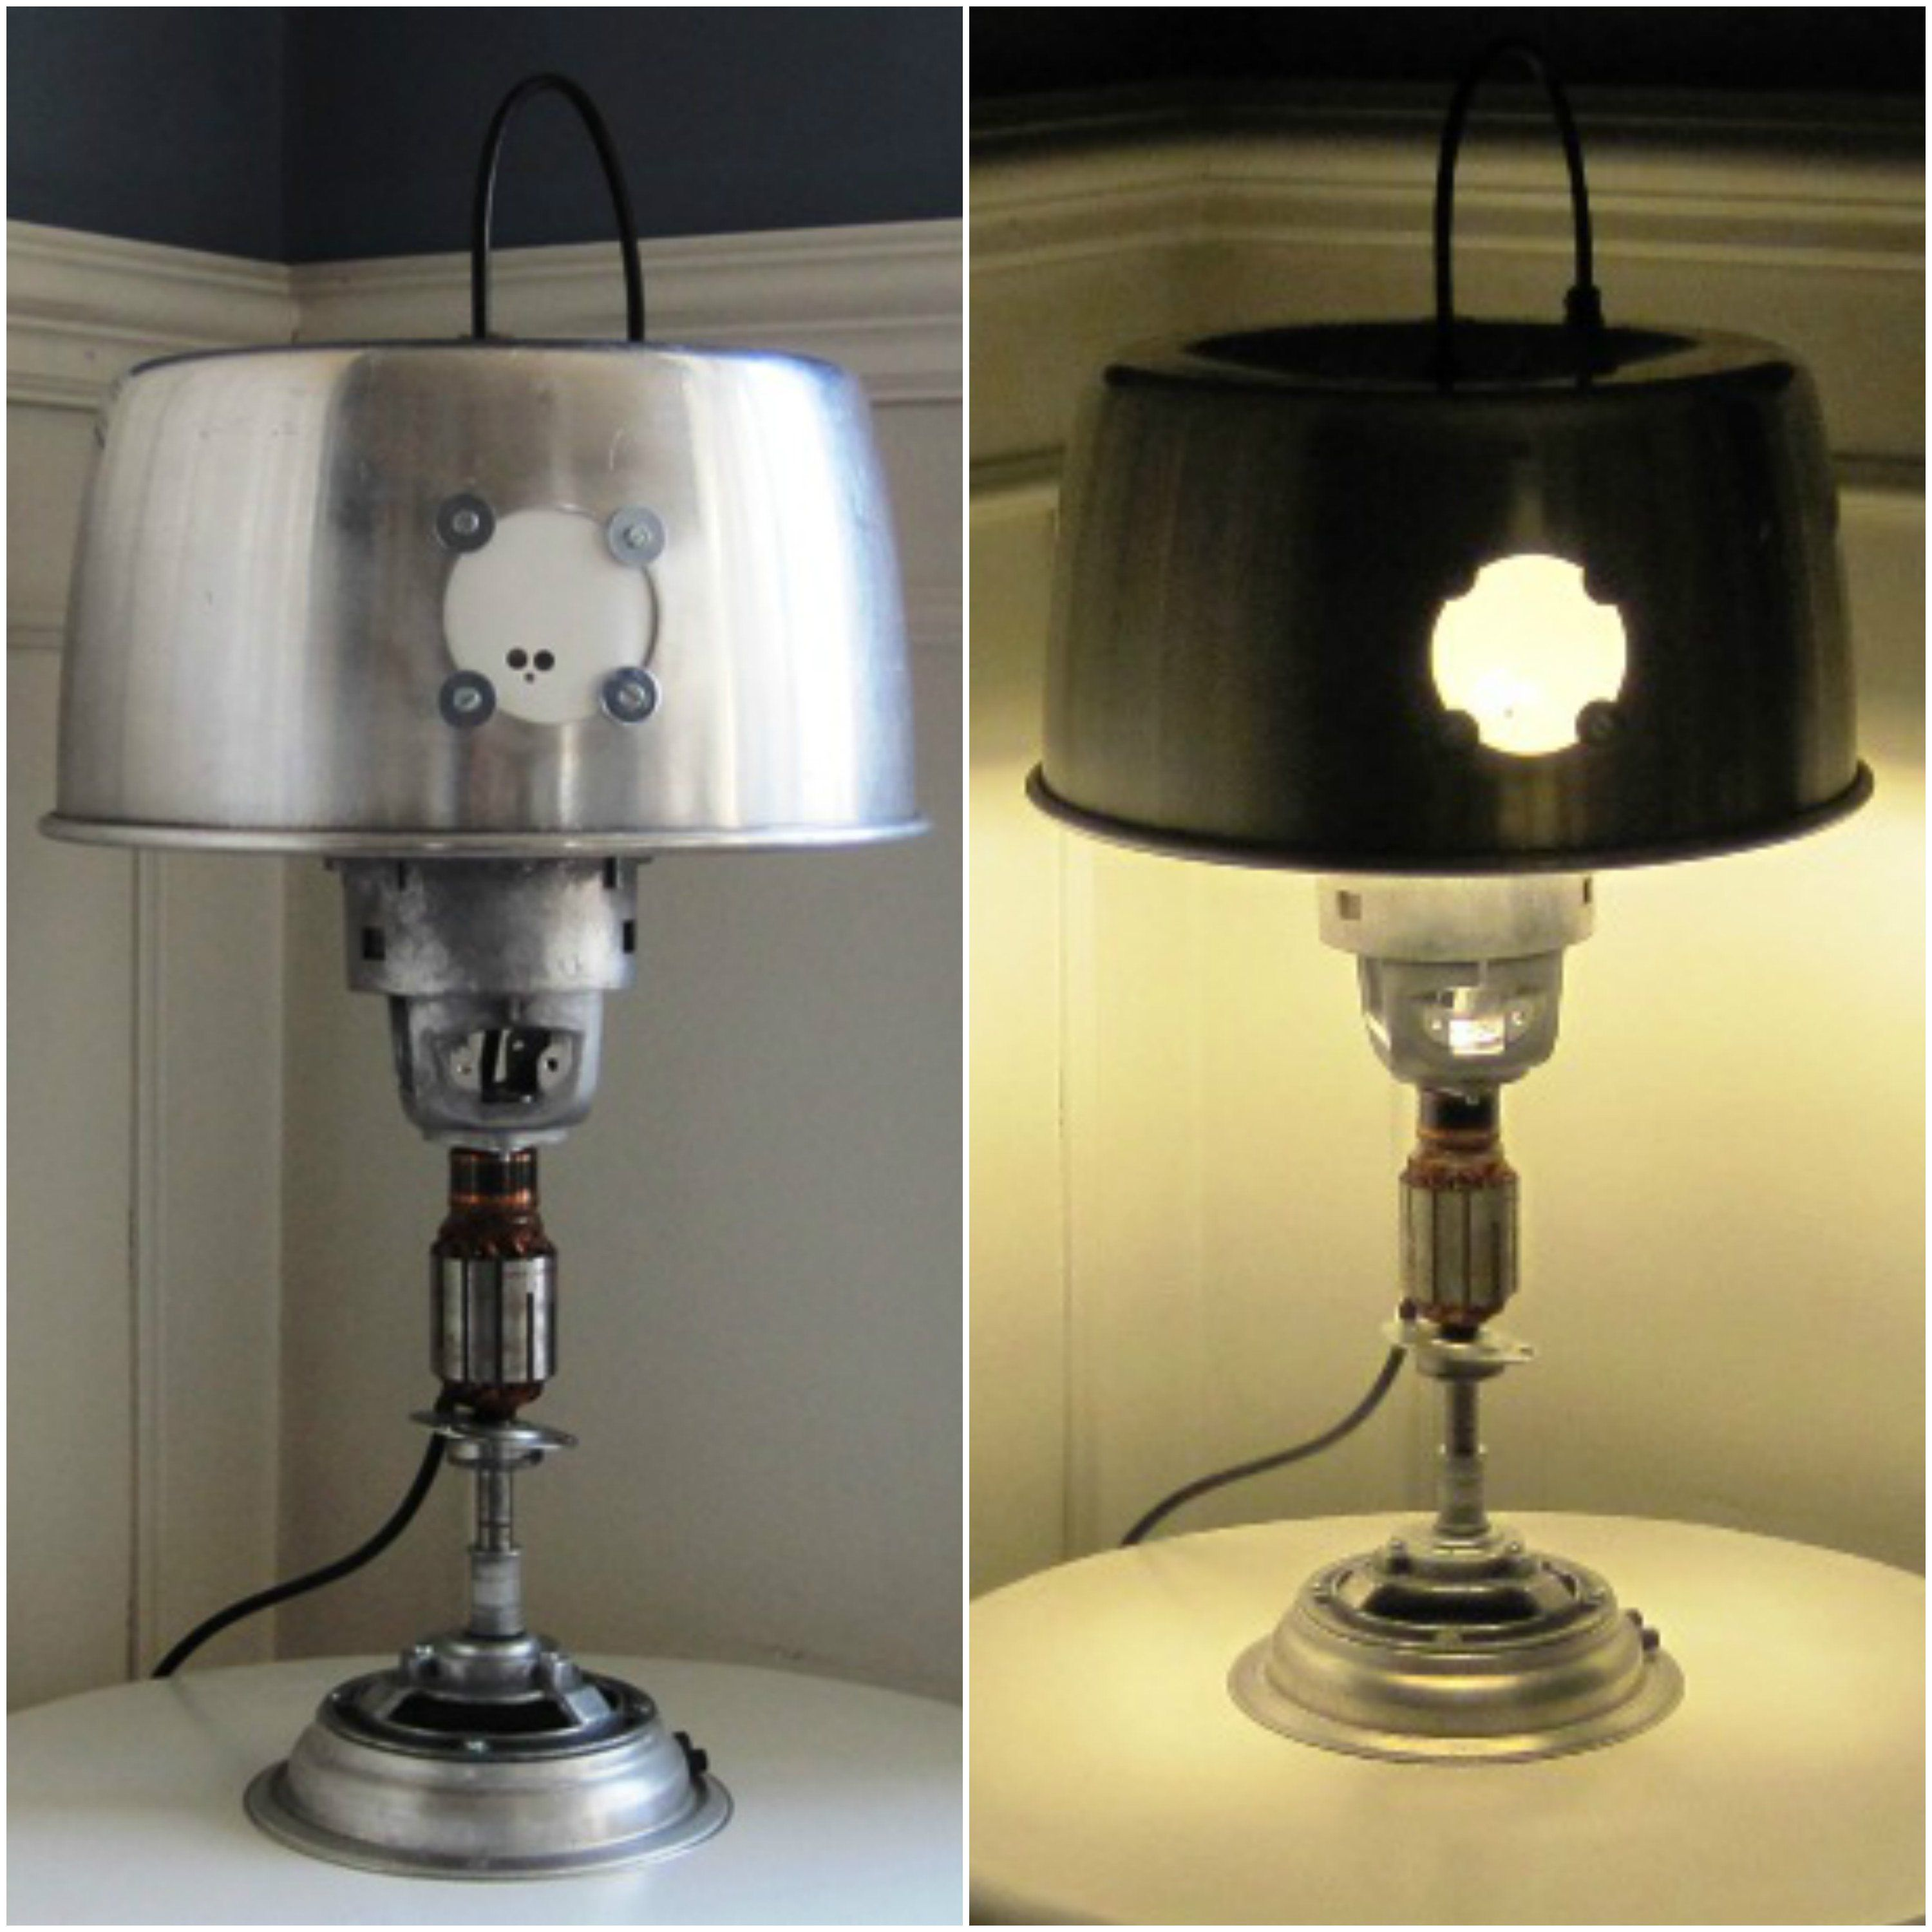 #Lamp, #Lamps, #Light, #Nilfisk, #Recycling, #